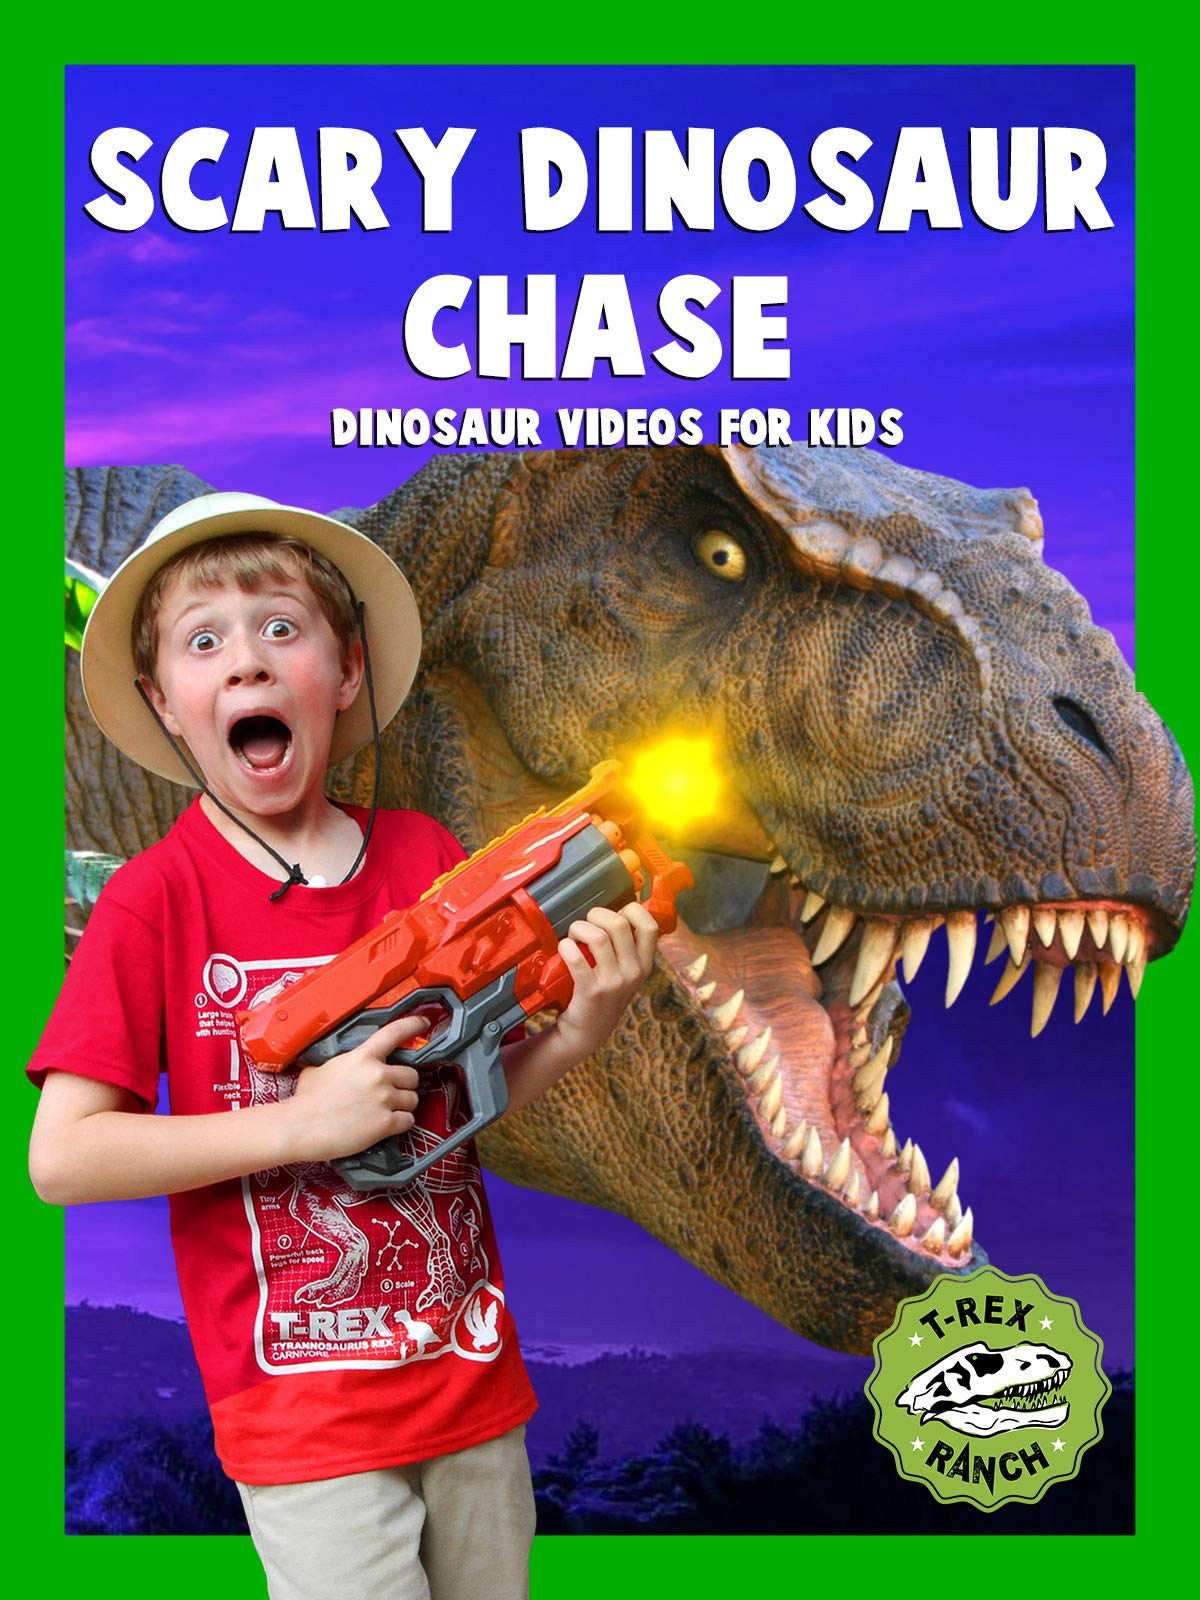 T-Rex Ranch - Scary Dinosaur Chase - Dinosaur Videos for Kids